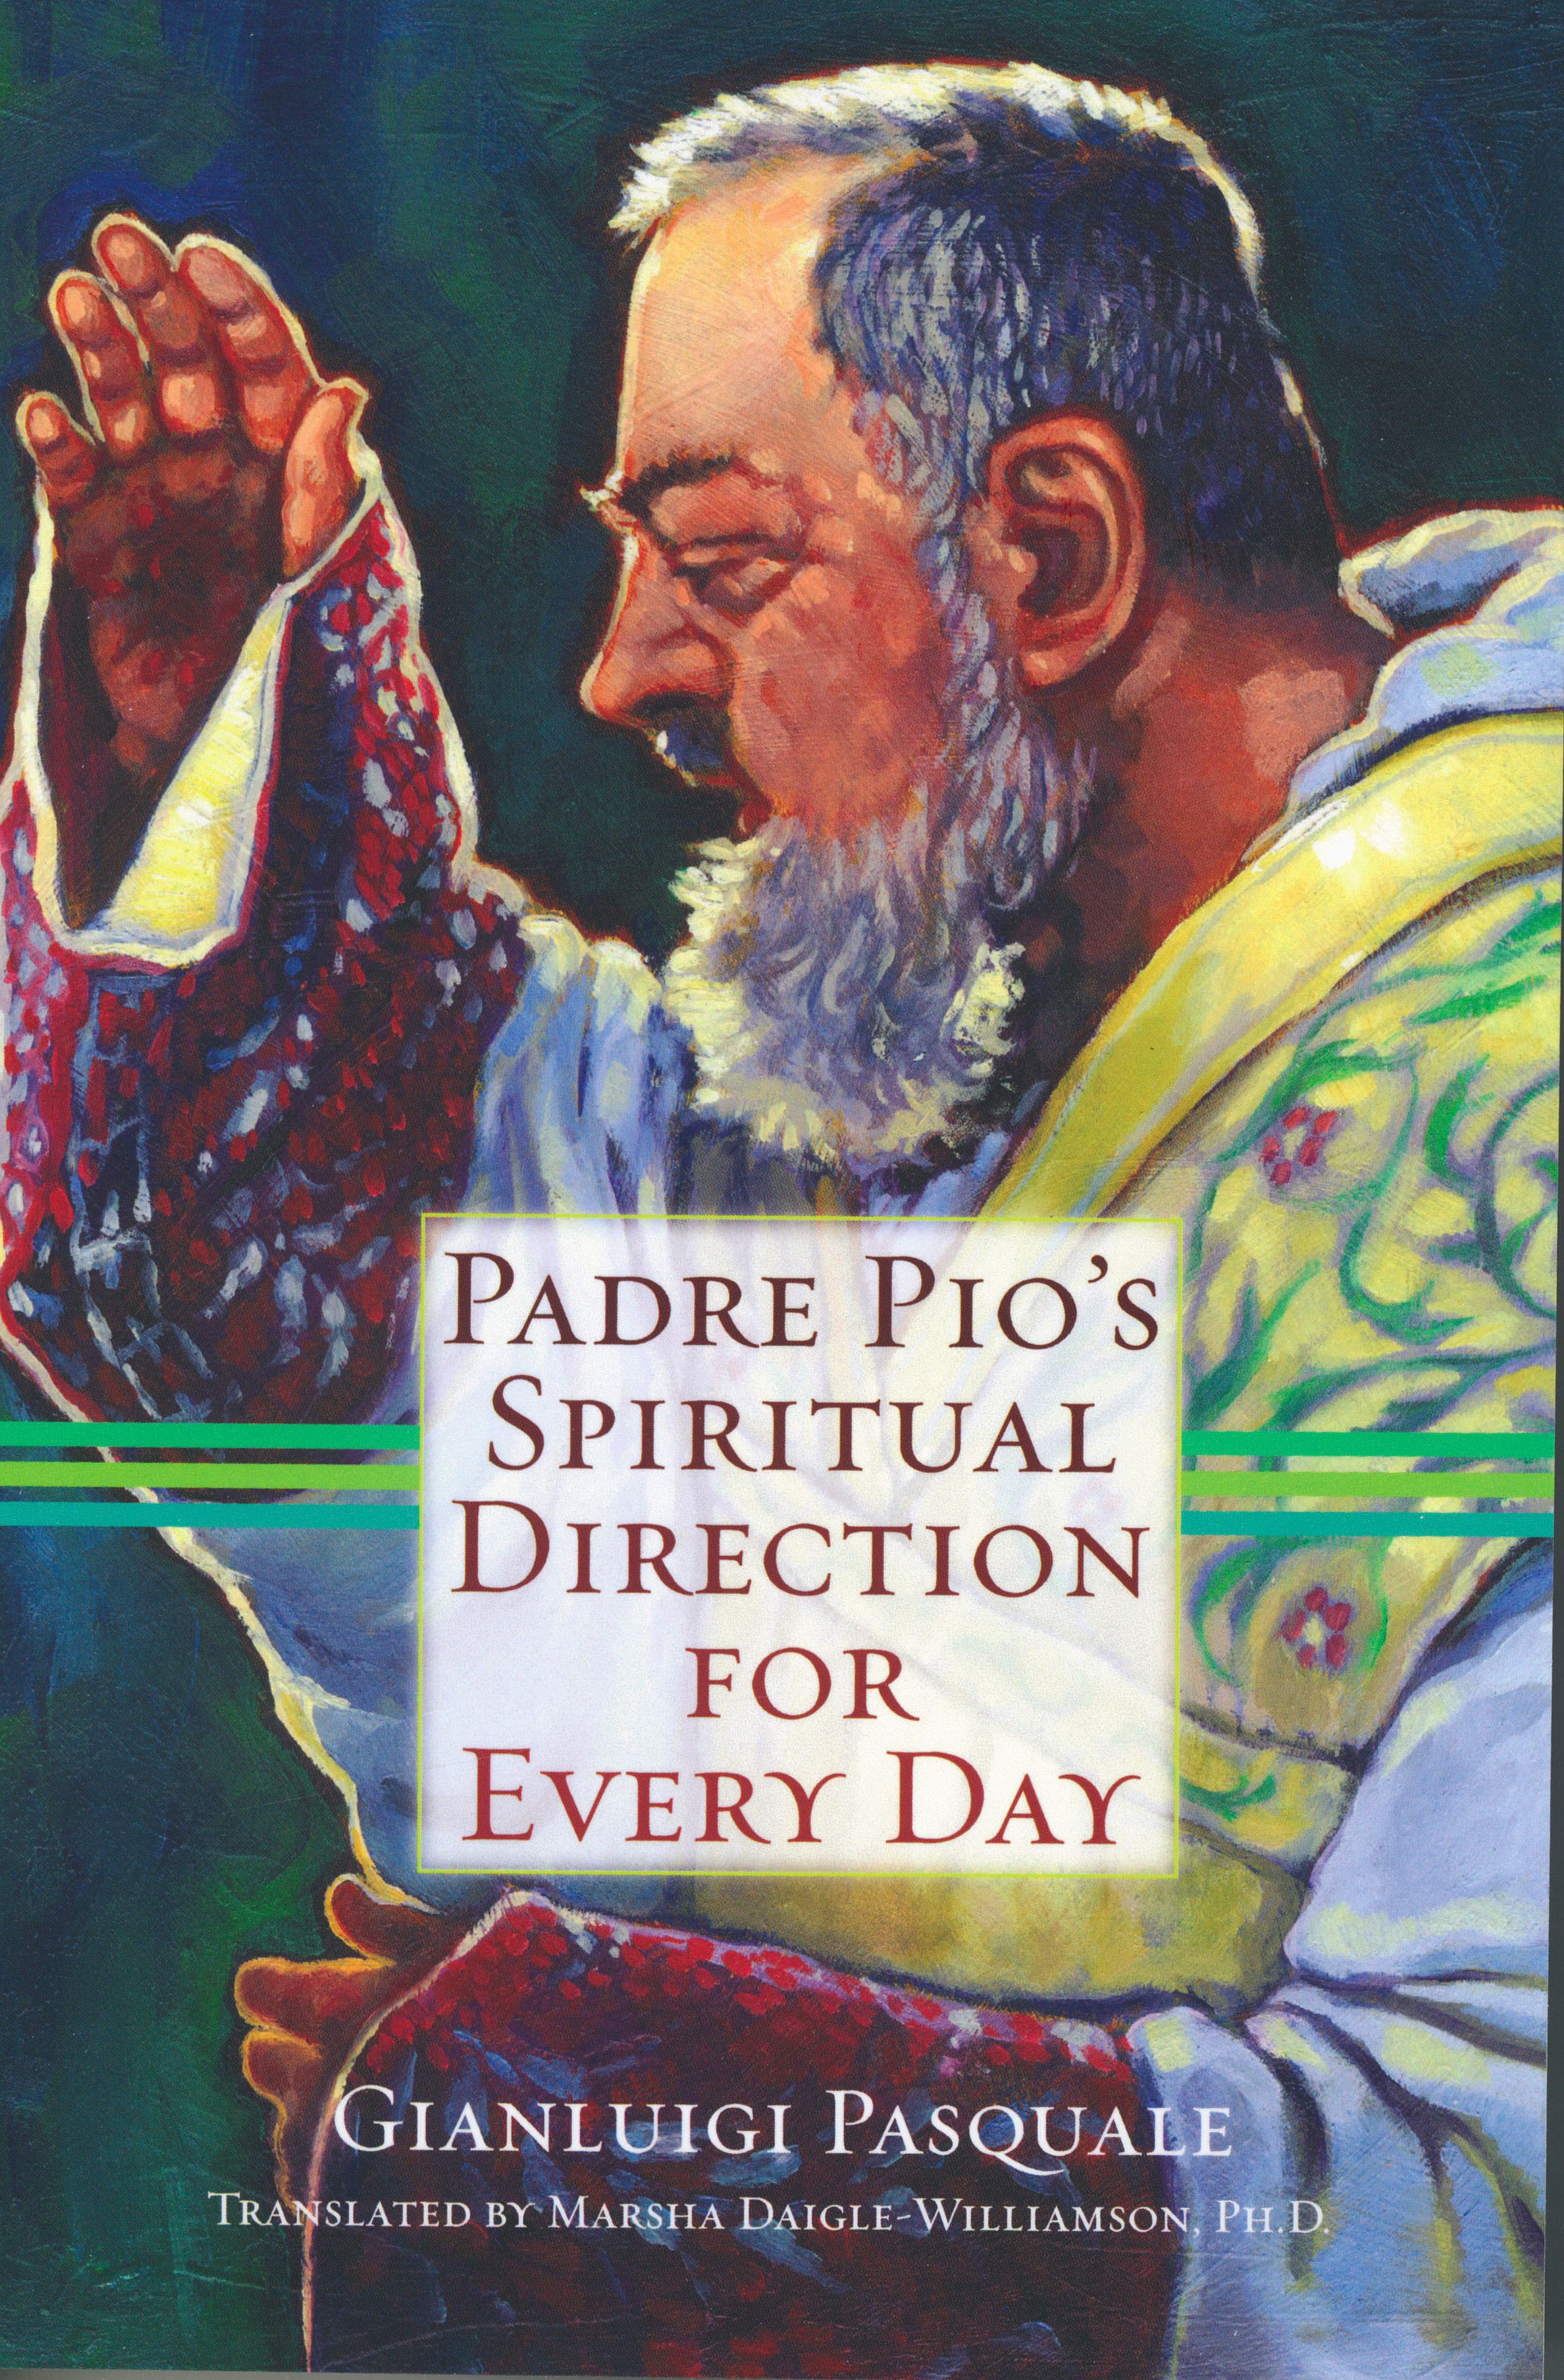 Padre Pio's Spiritual Direction for Every Day 108-9781616360054